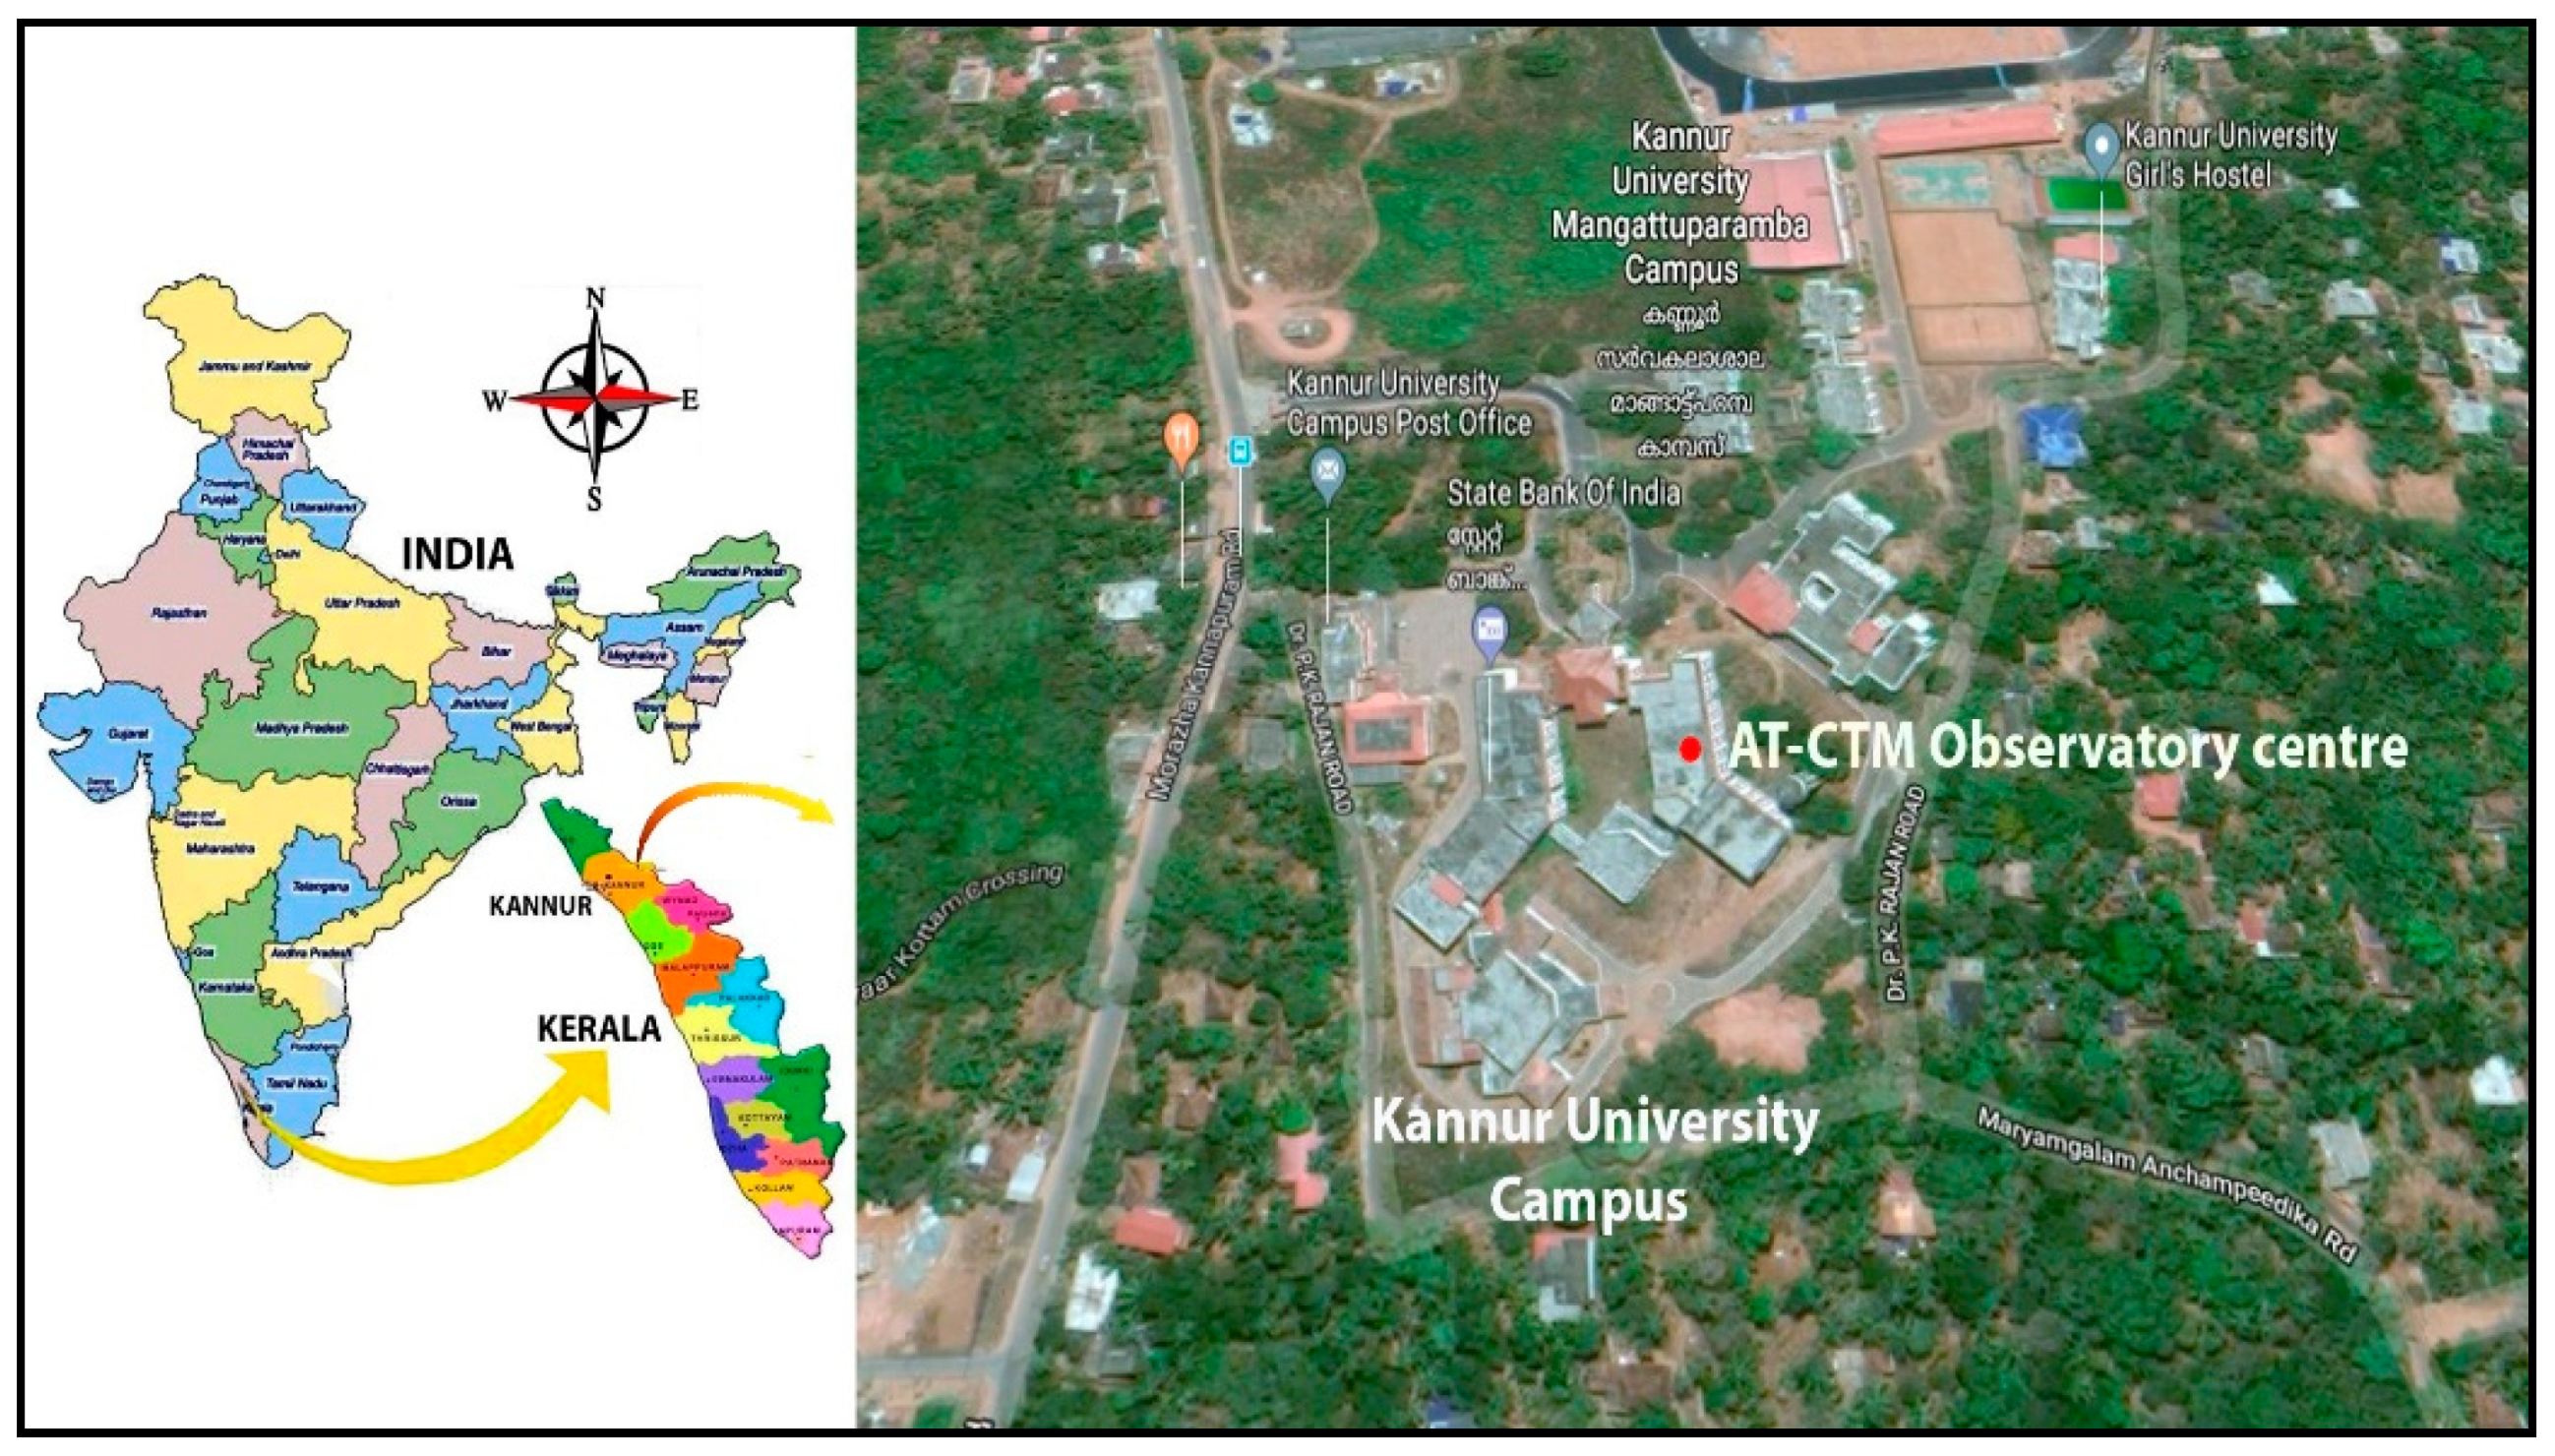 Aerial view of Kannur University Campus